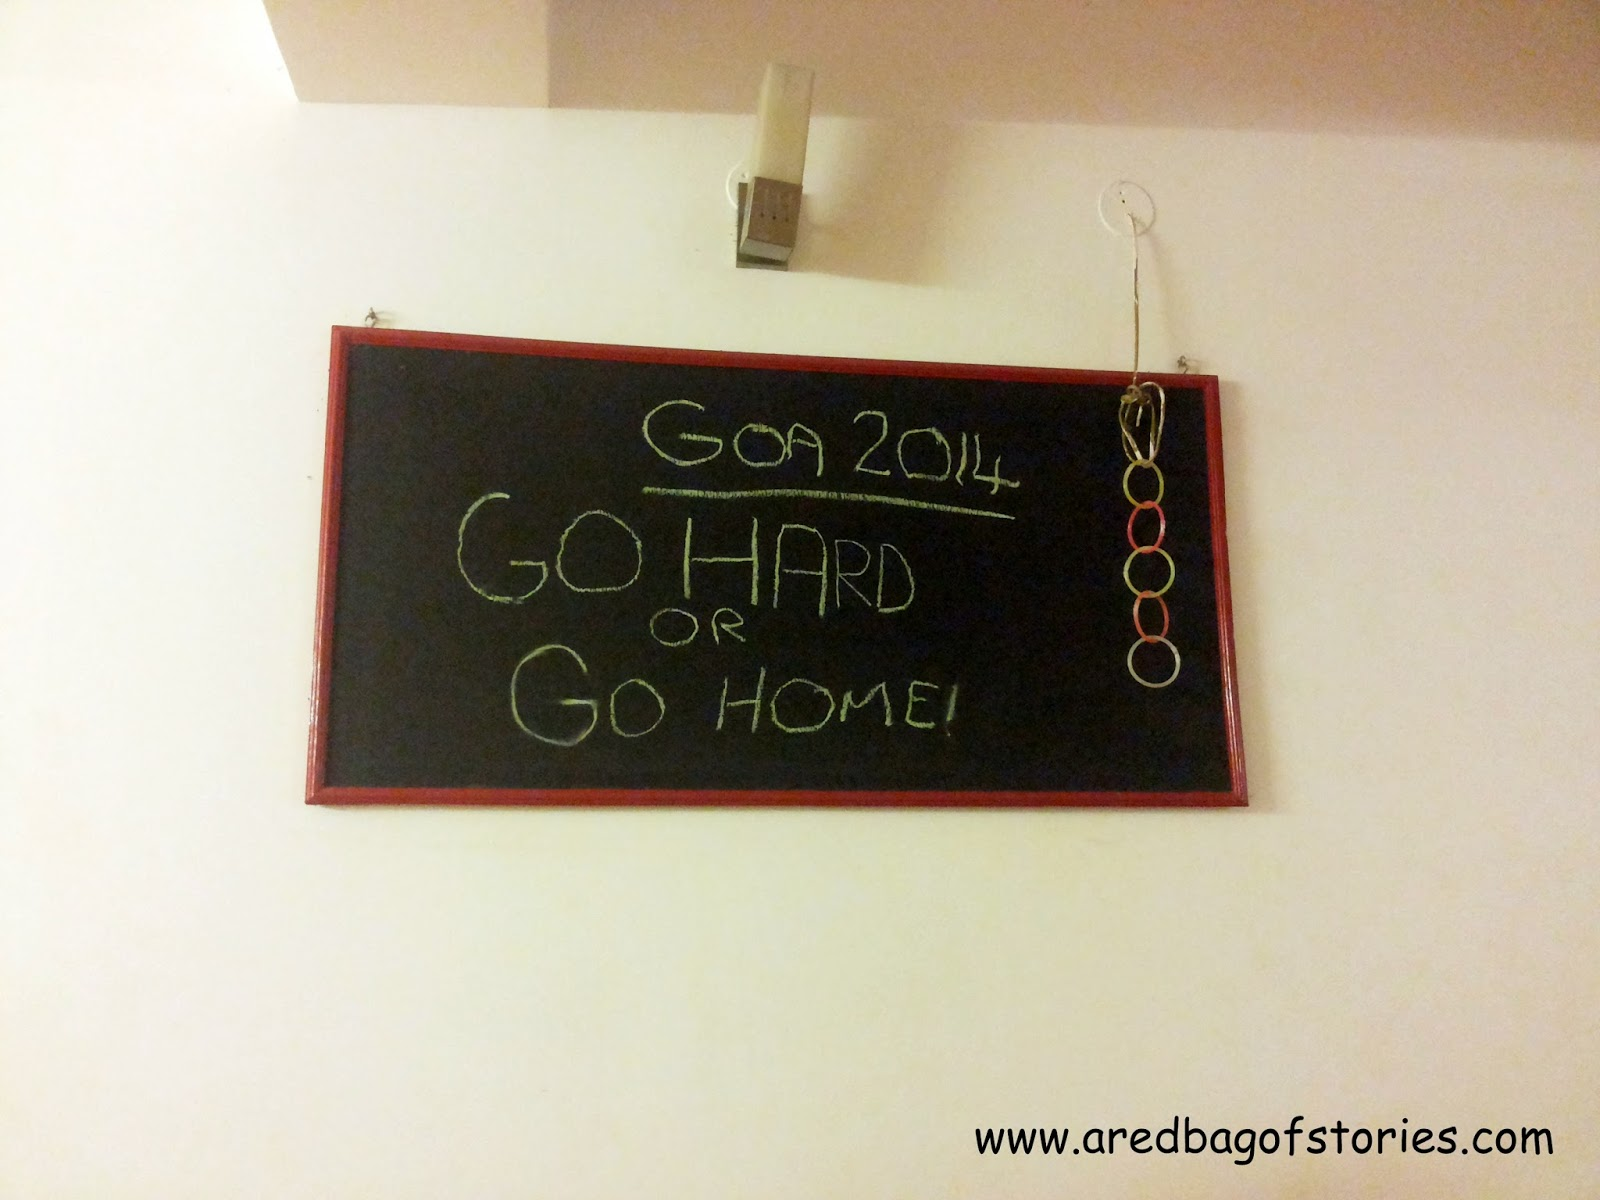 Red Door Hostel Goa